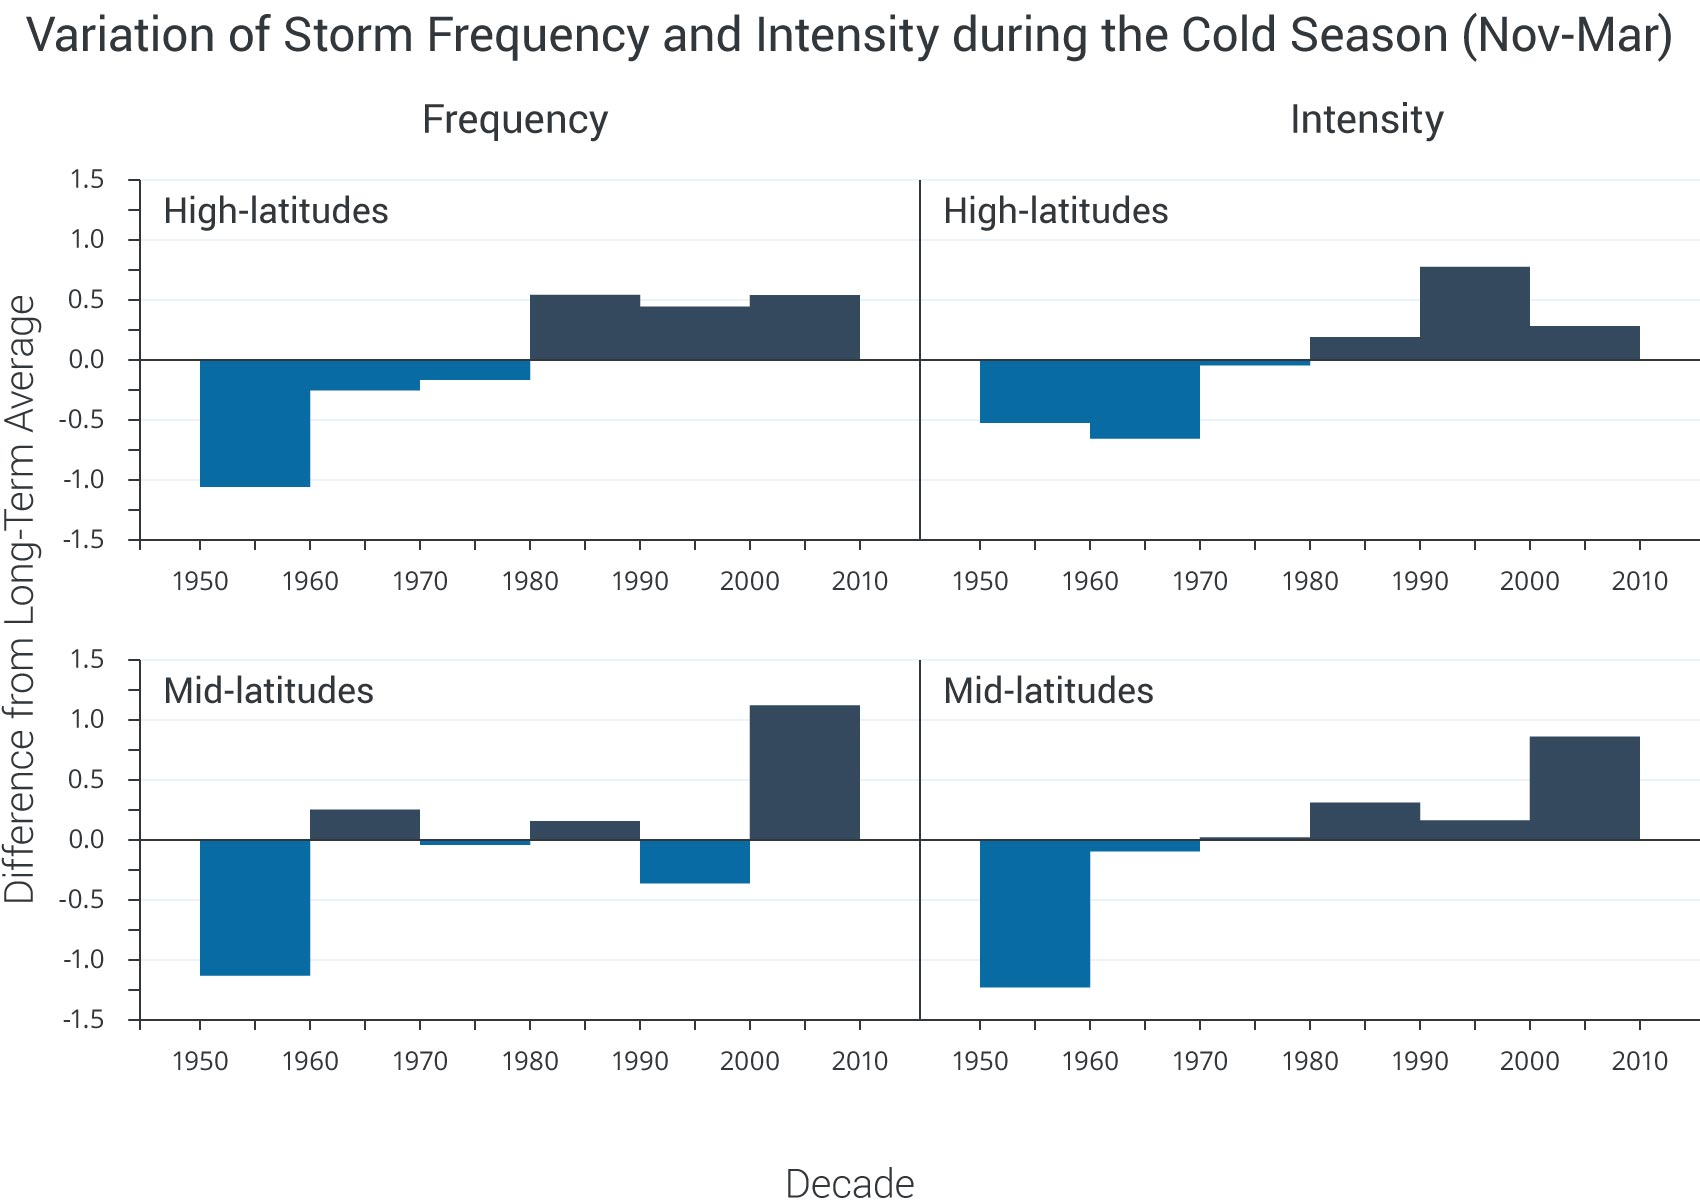 Variation of Storm Frequency and Intensity during the Cold Season (November – March)